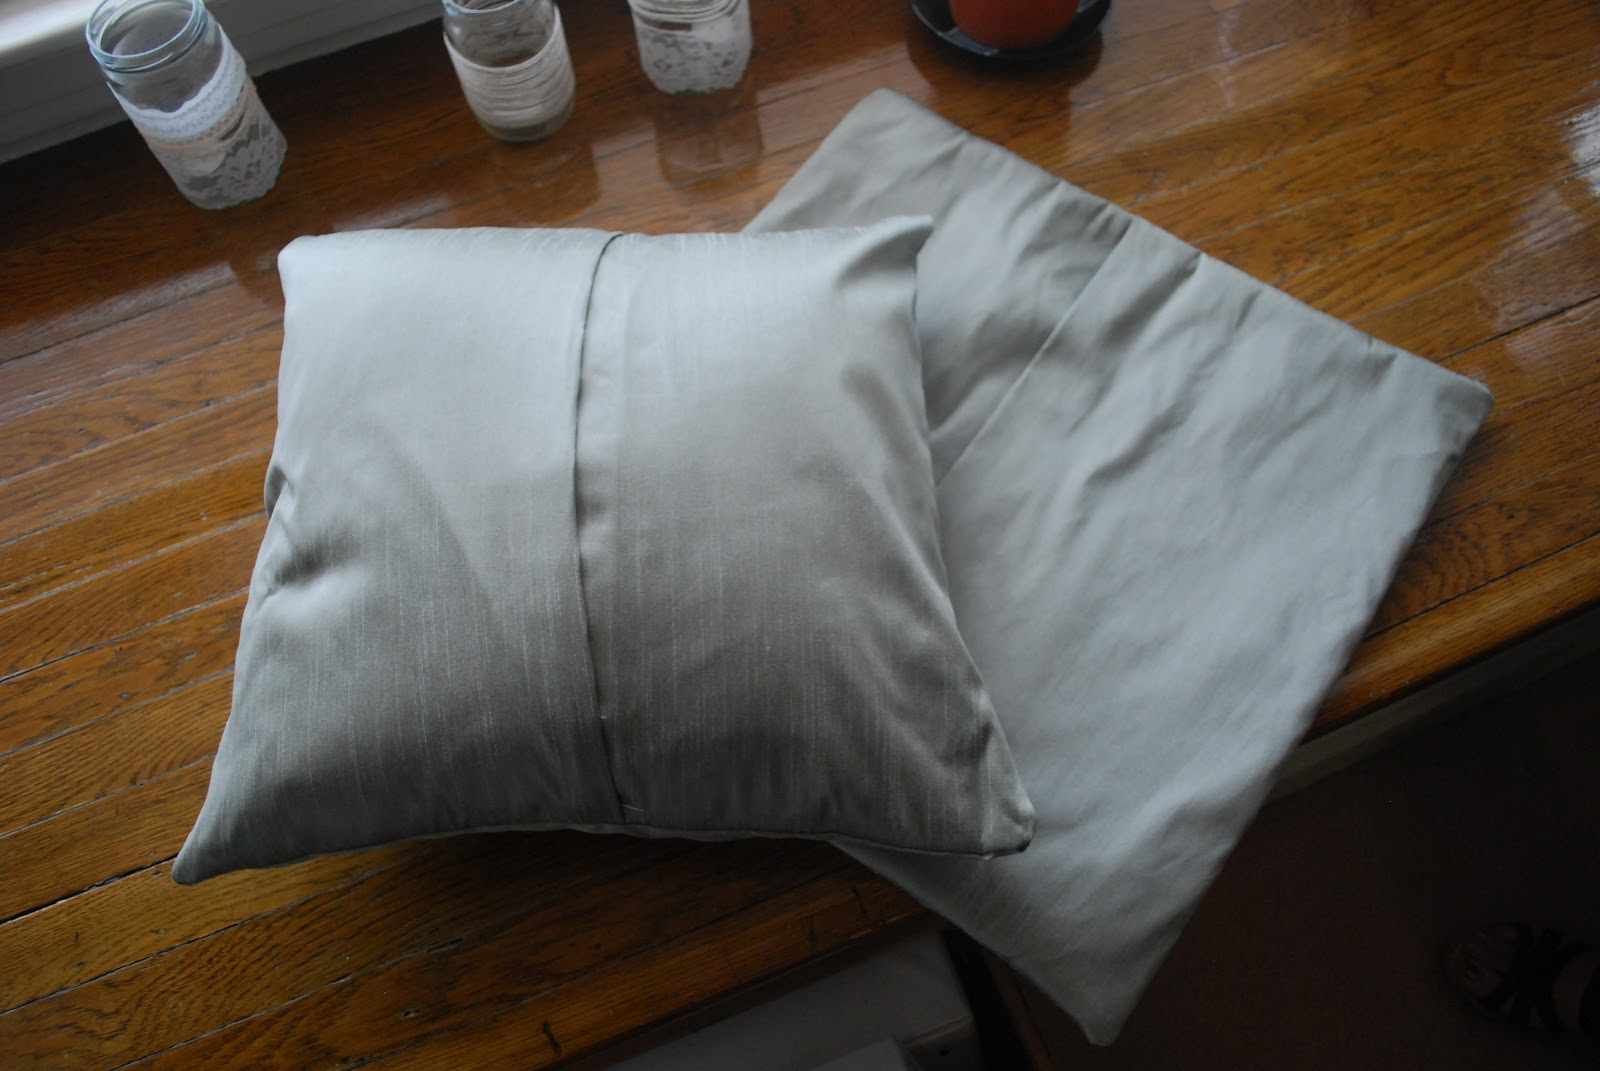 Crafternoon Delight: Sew What?: Make Your Own Pillow Covers